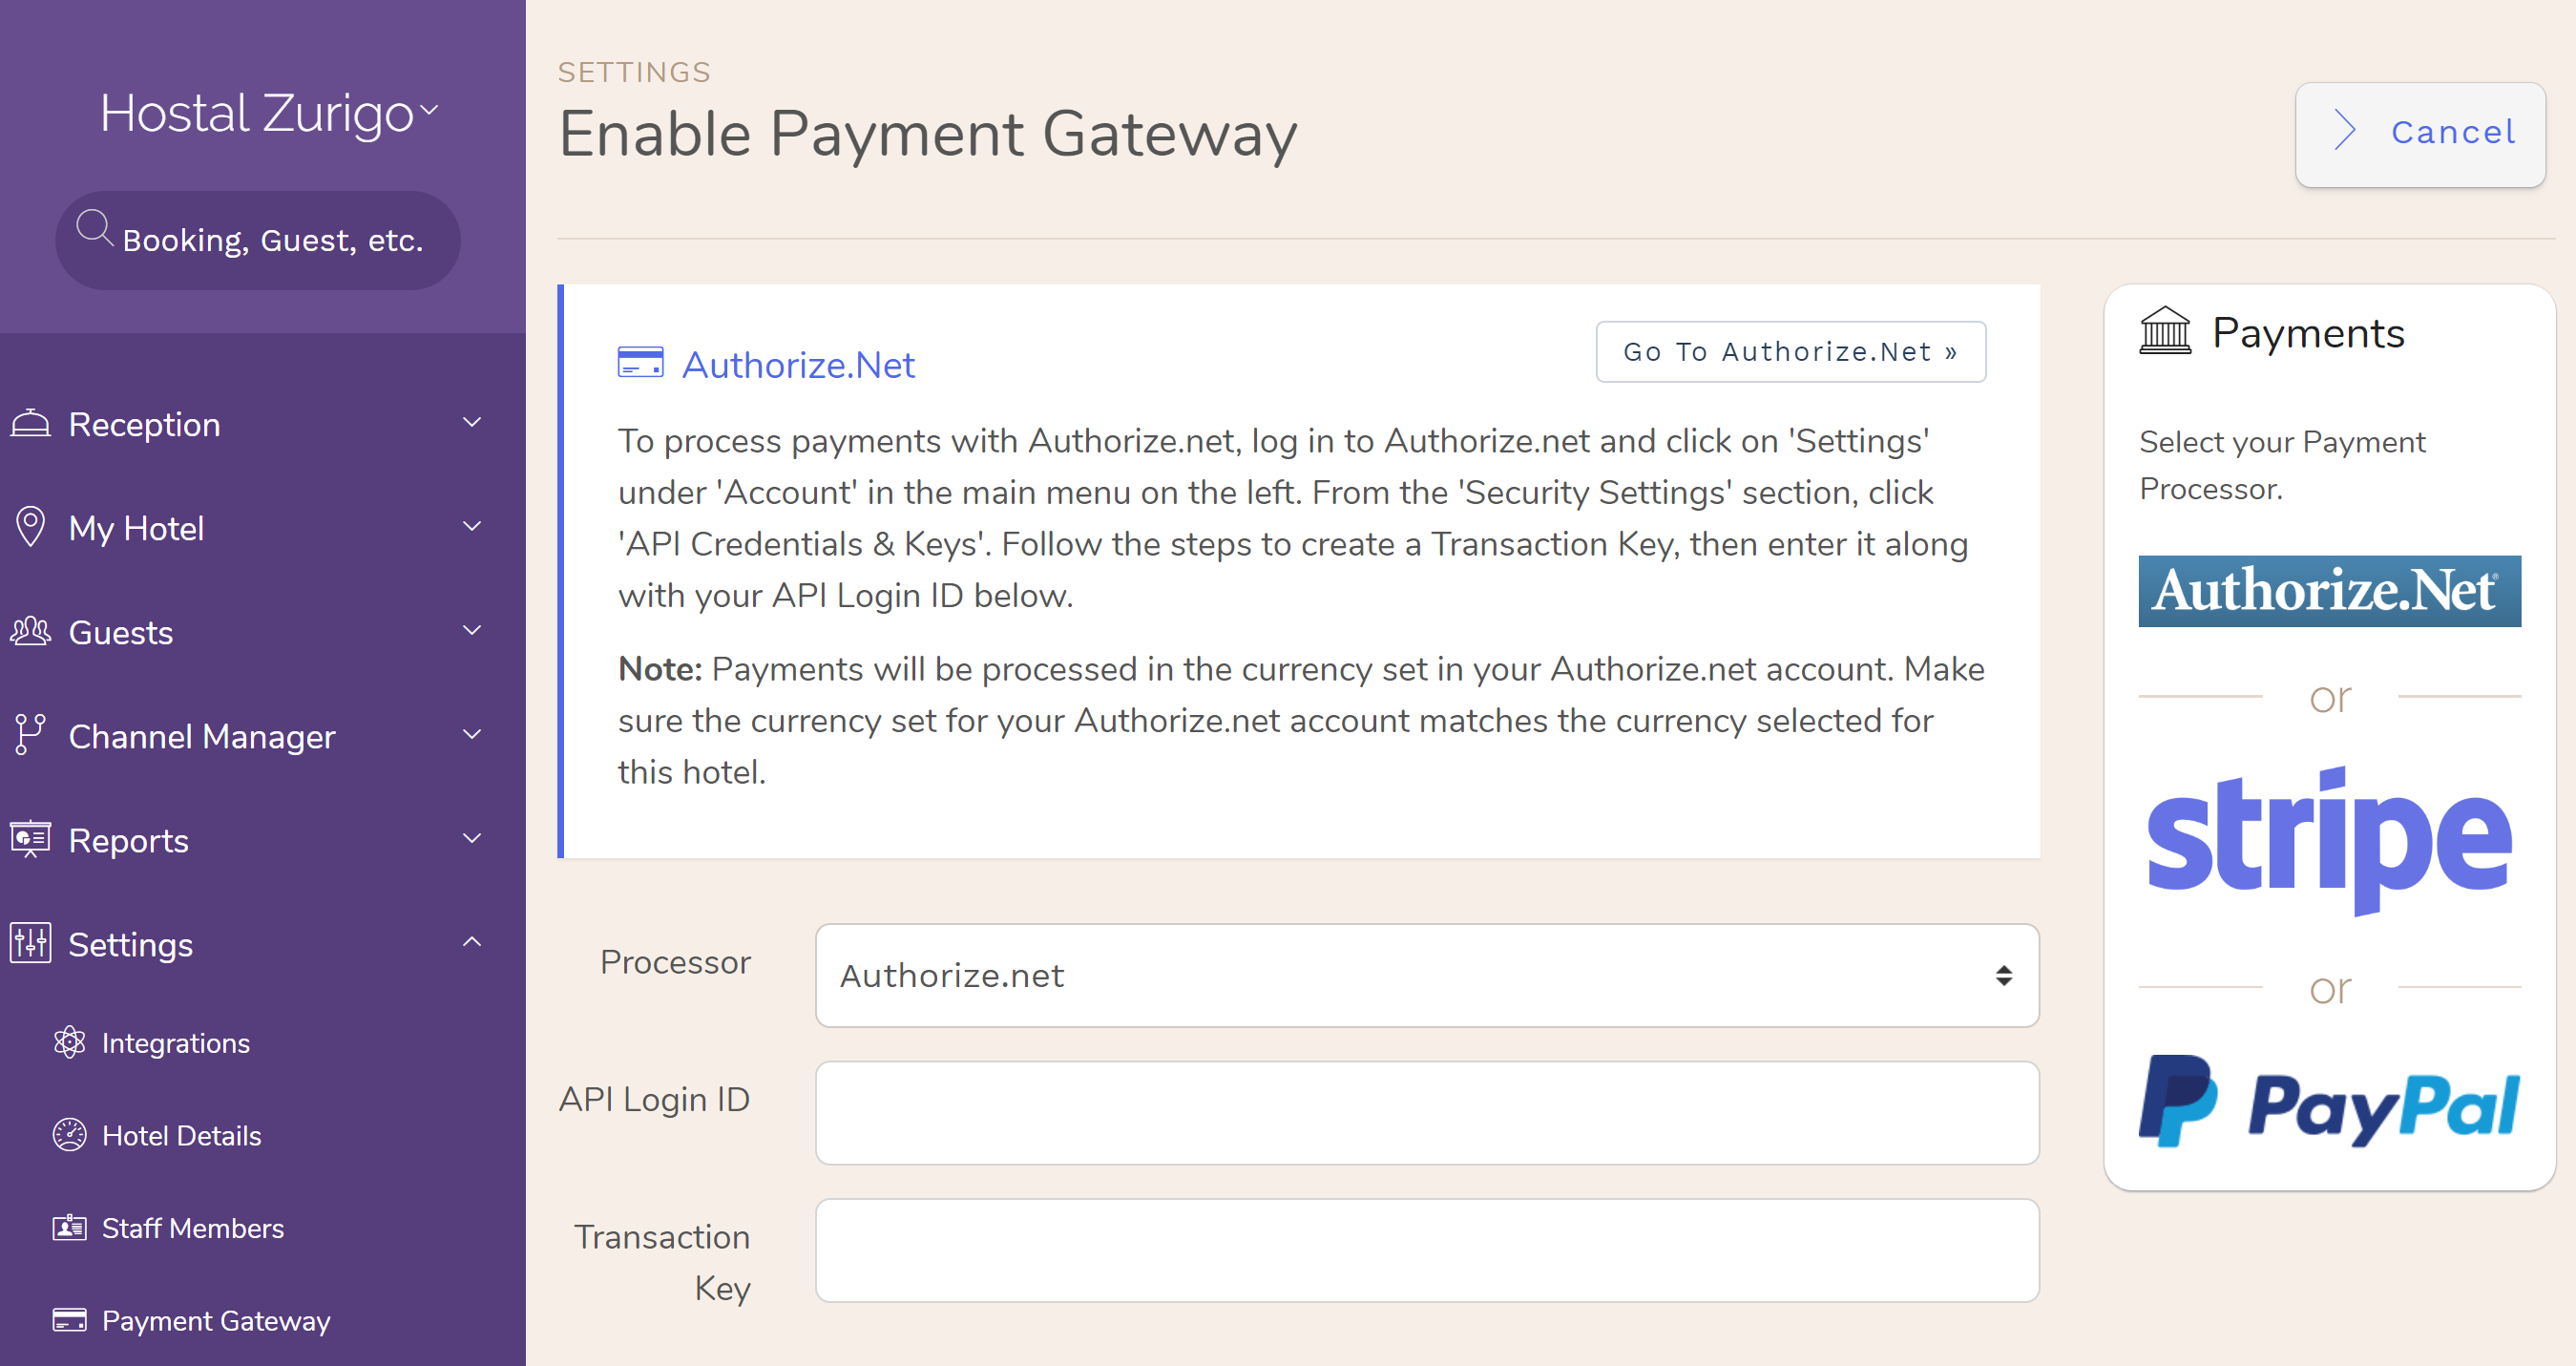 Authorize.net is now available as a Hotel payment processor. Hotel PMS Software